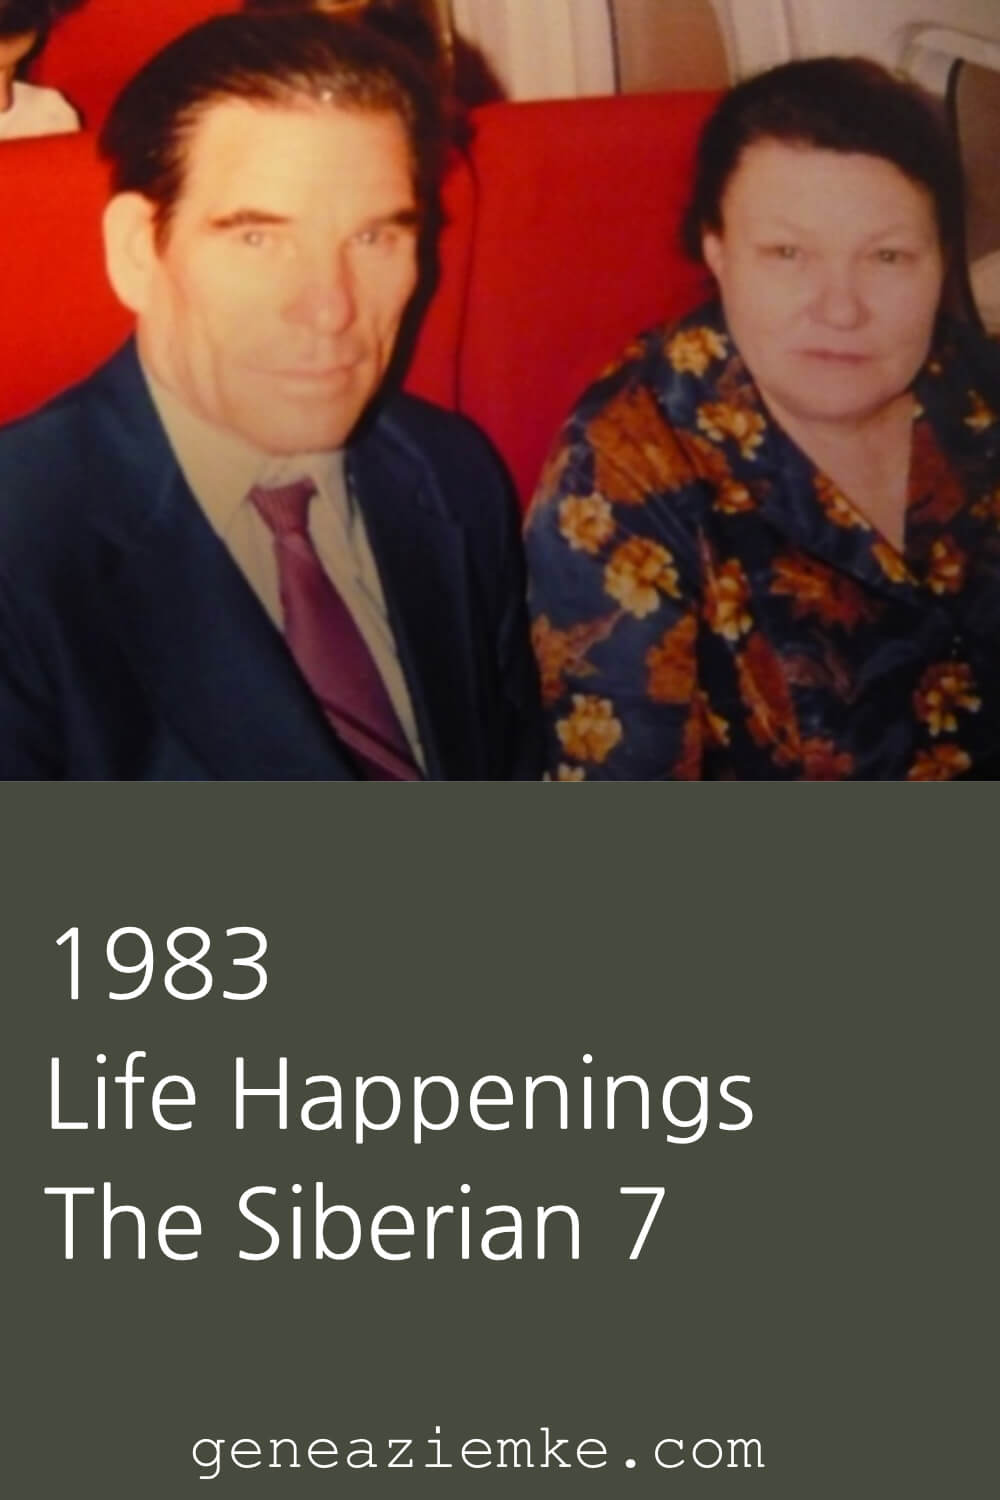 The Ziemke Story - 1983 - Life, Church, and The Siberian Seven